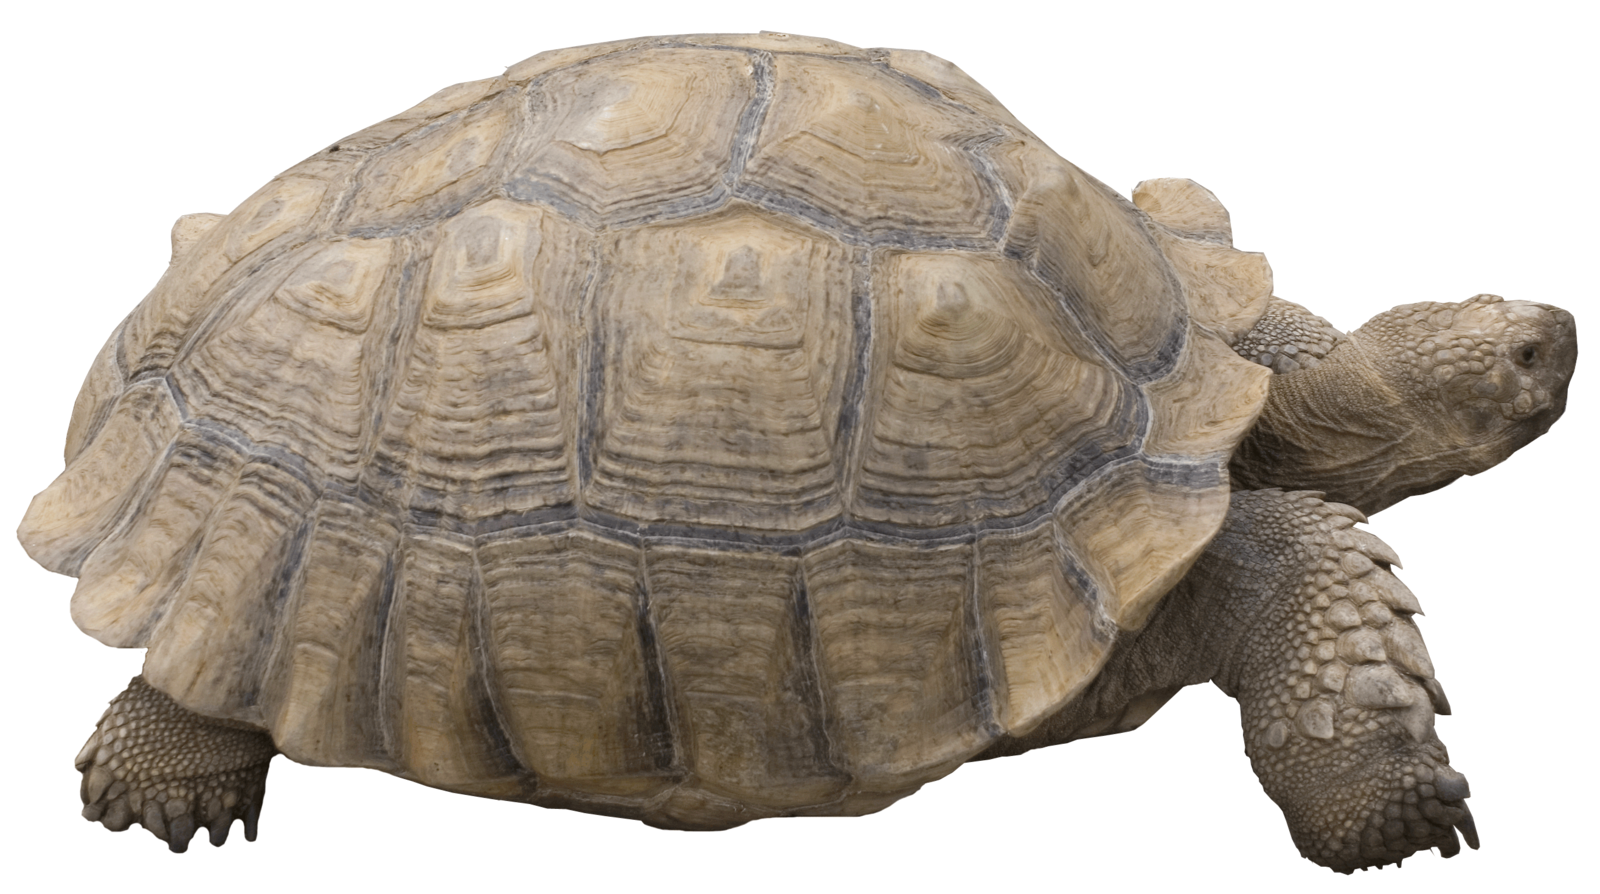 Pet clipart pet tortoise. Png transparent images pluspng